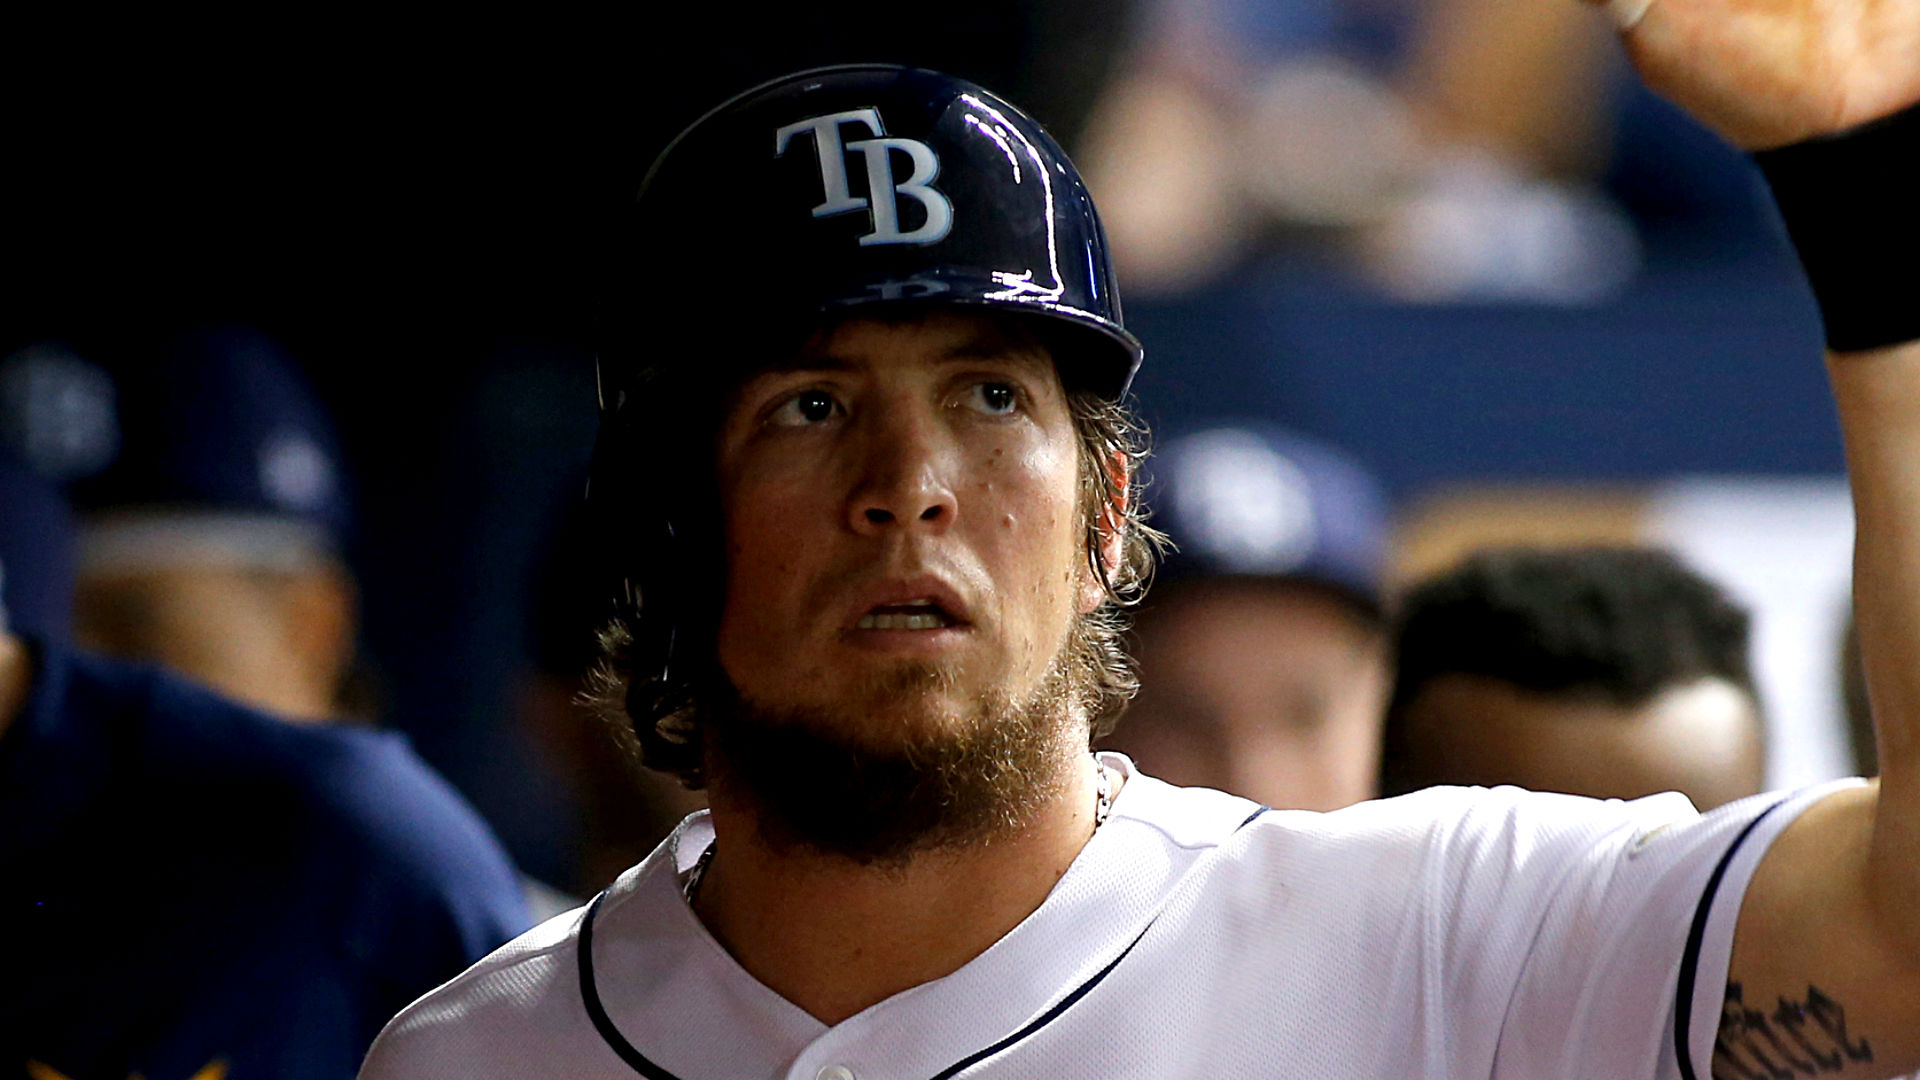 Teammates reach out to Colby Rasmus — Rays journal